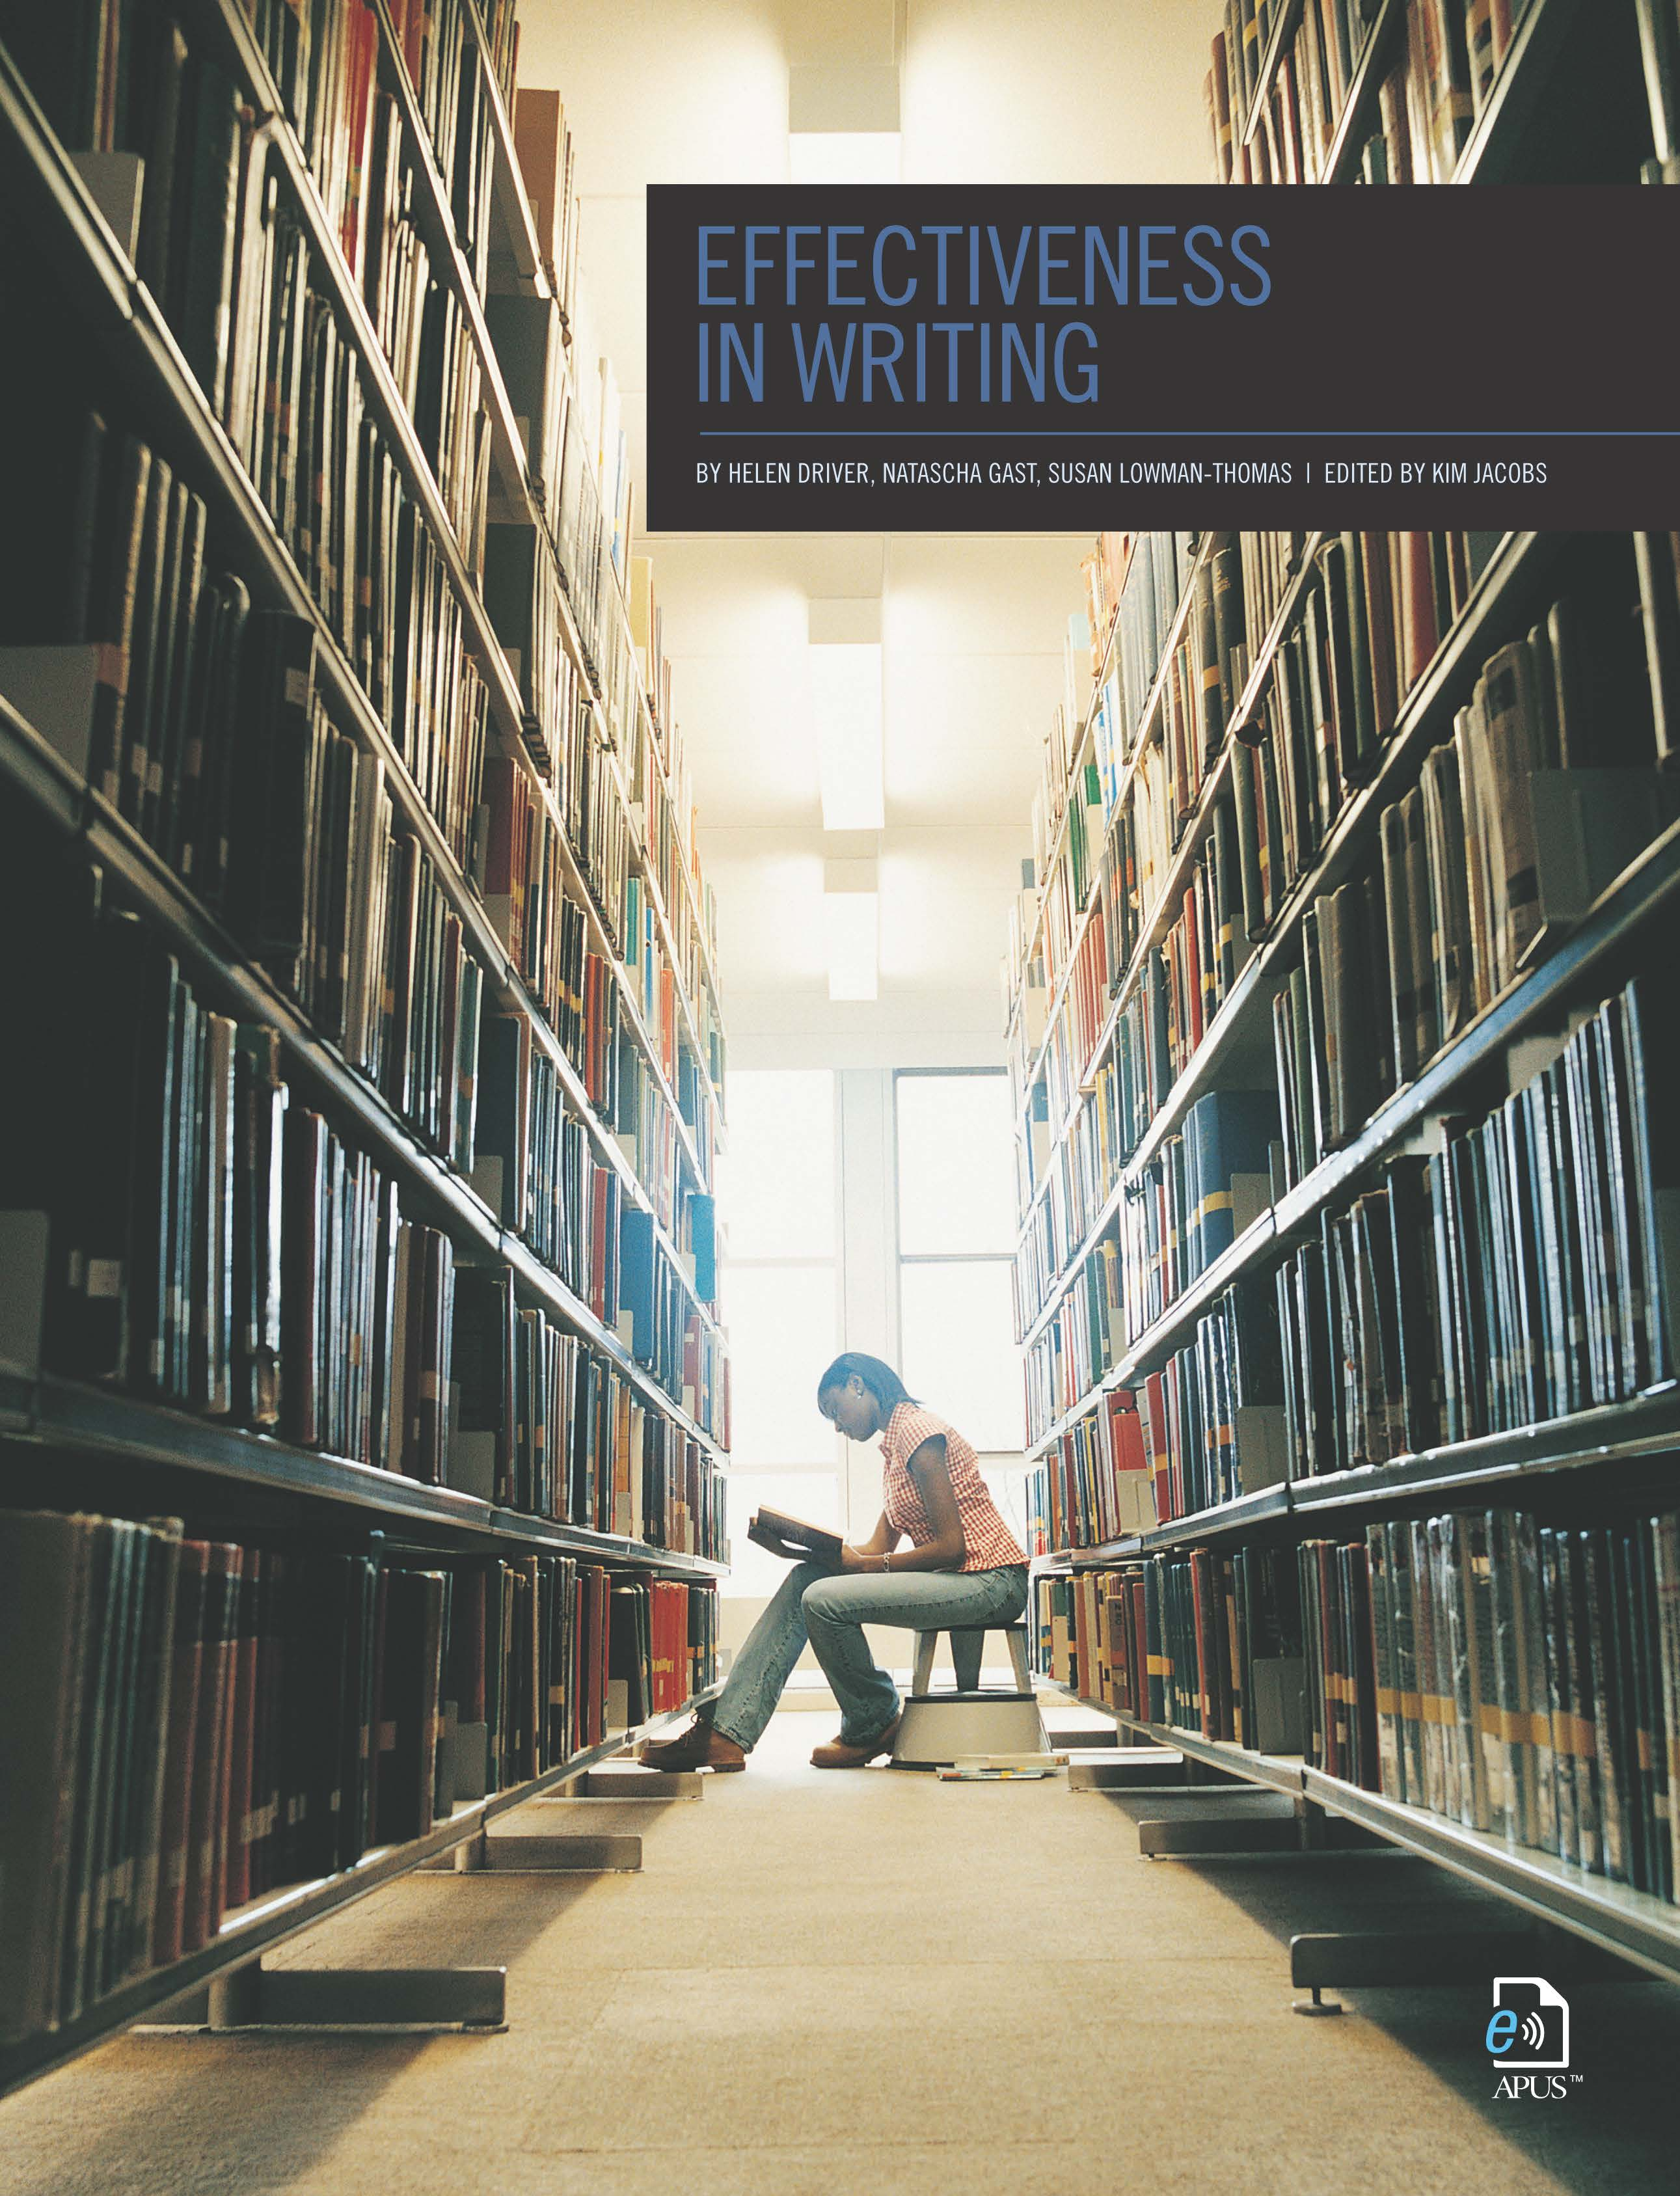 The cover of Effectiveness in Writing features a student between two library shelves, reading a book.